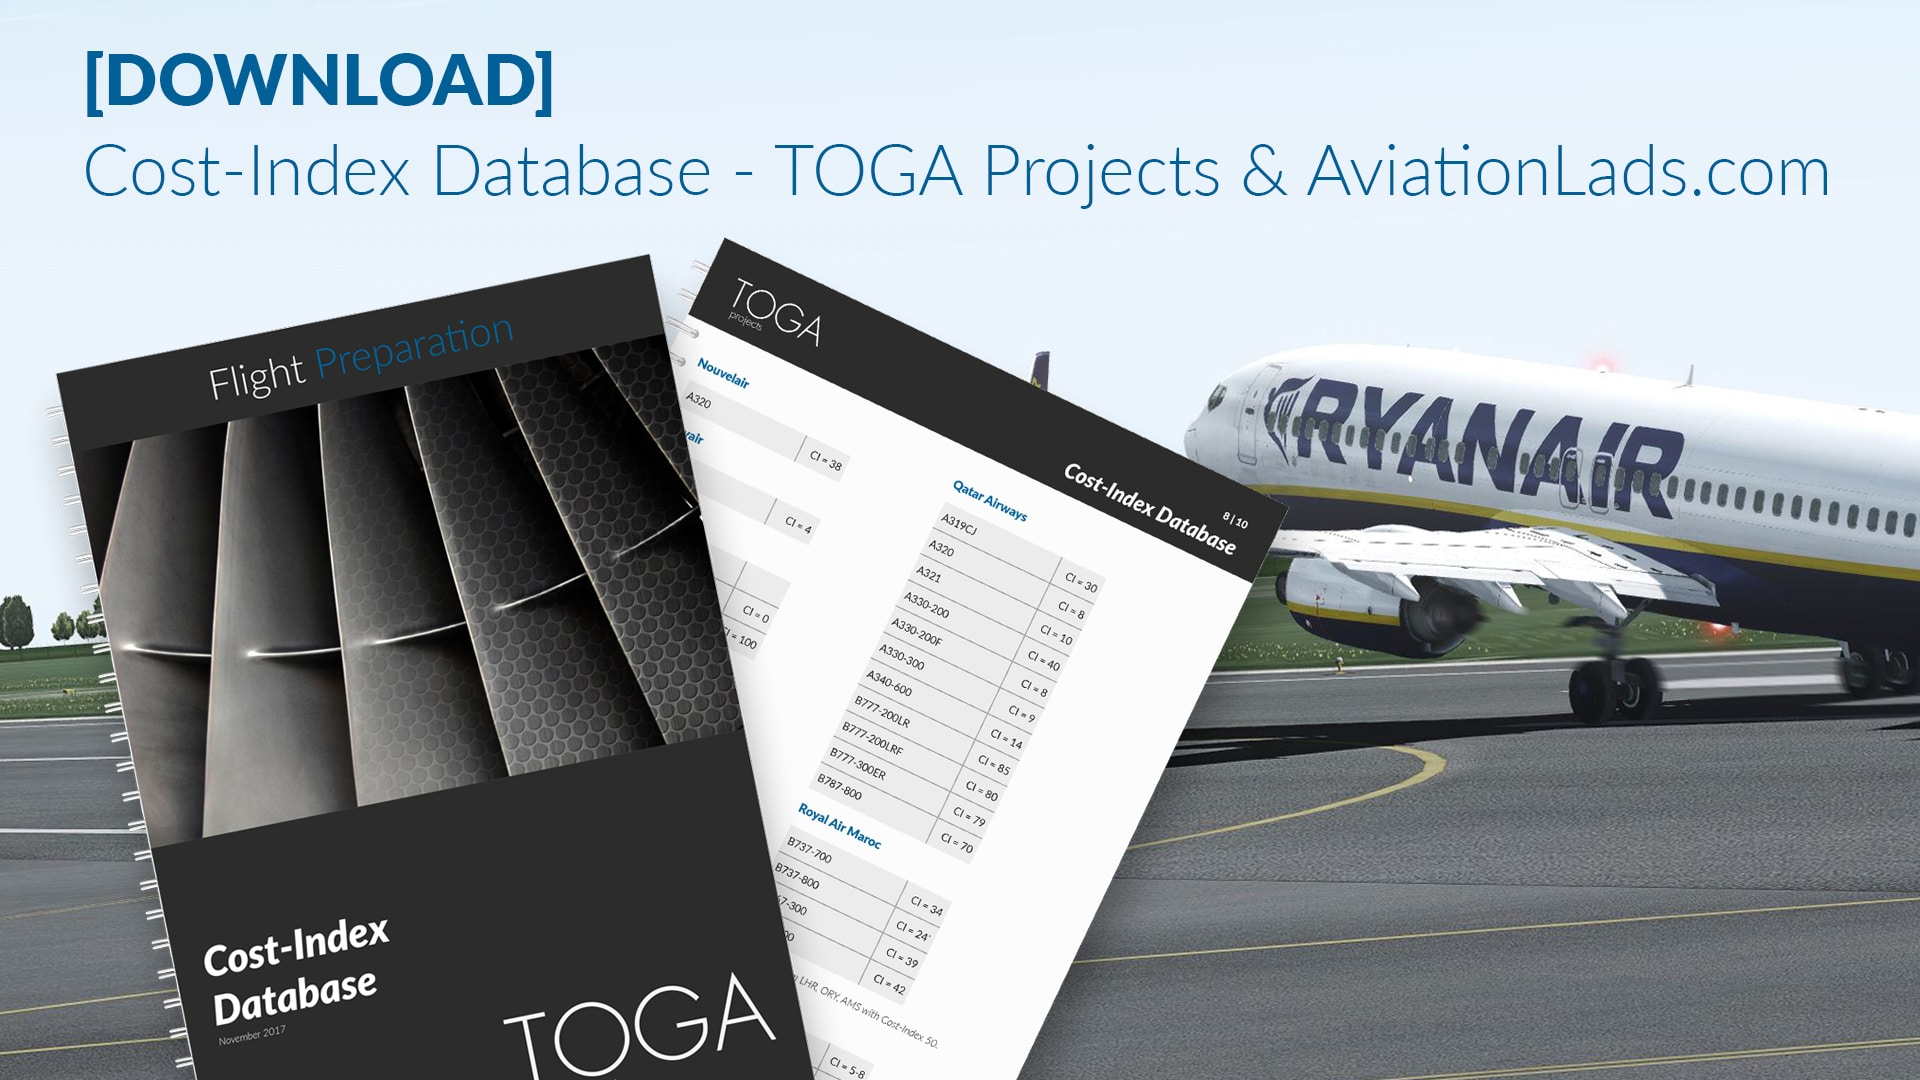 [DOWNLOAD] Cost-Index Database | TOGA Projects